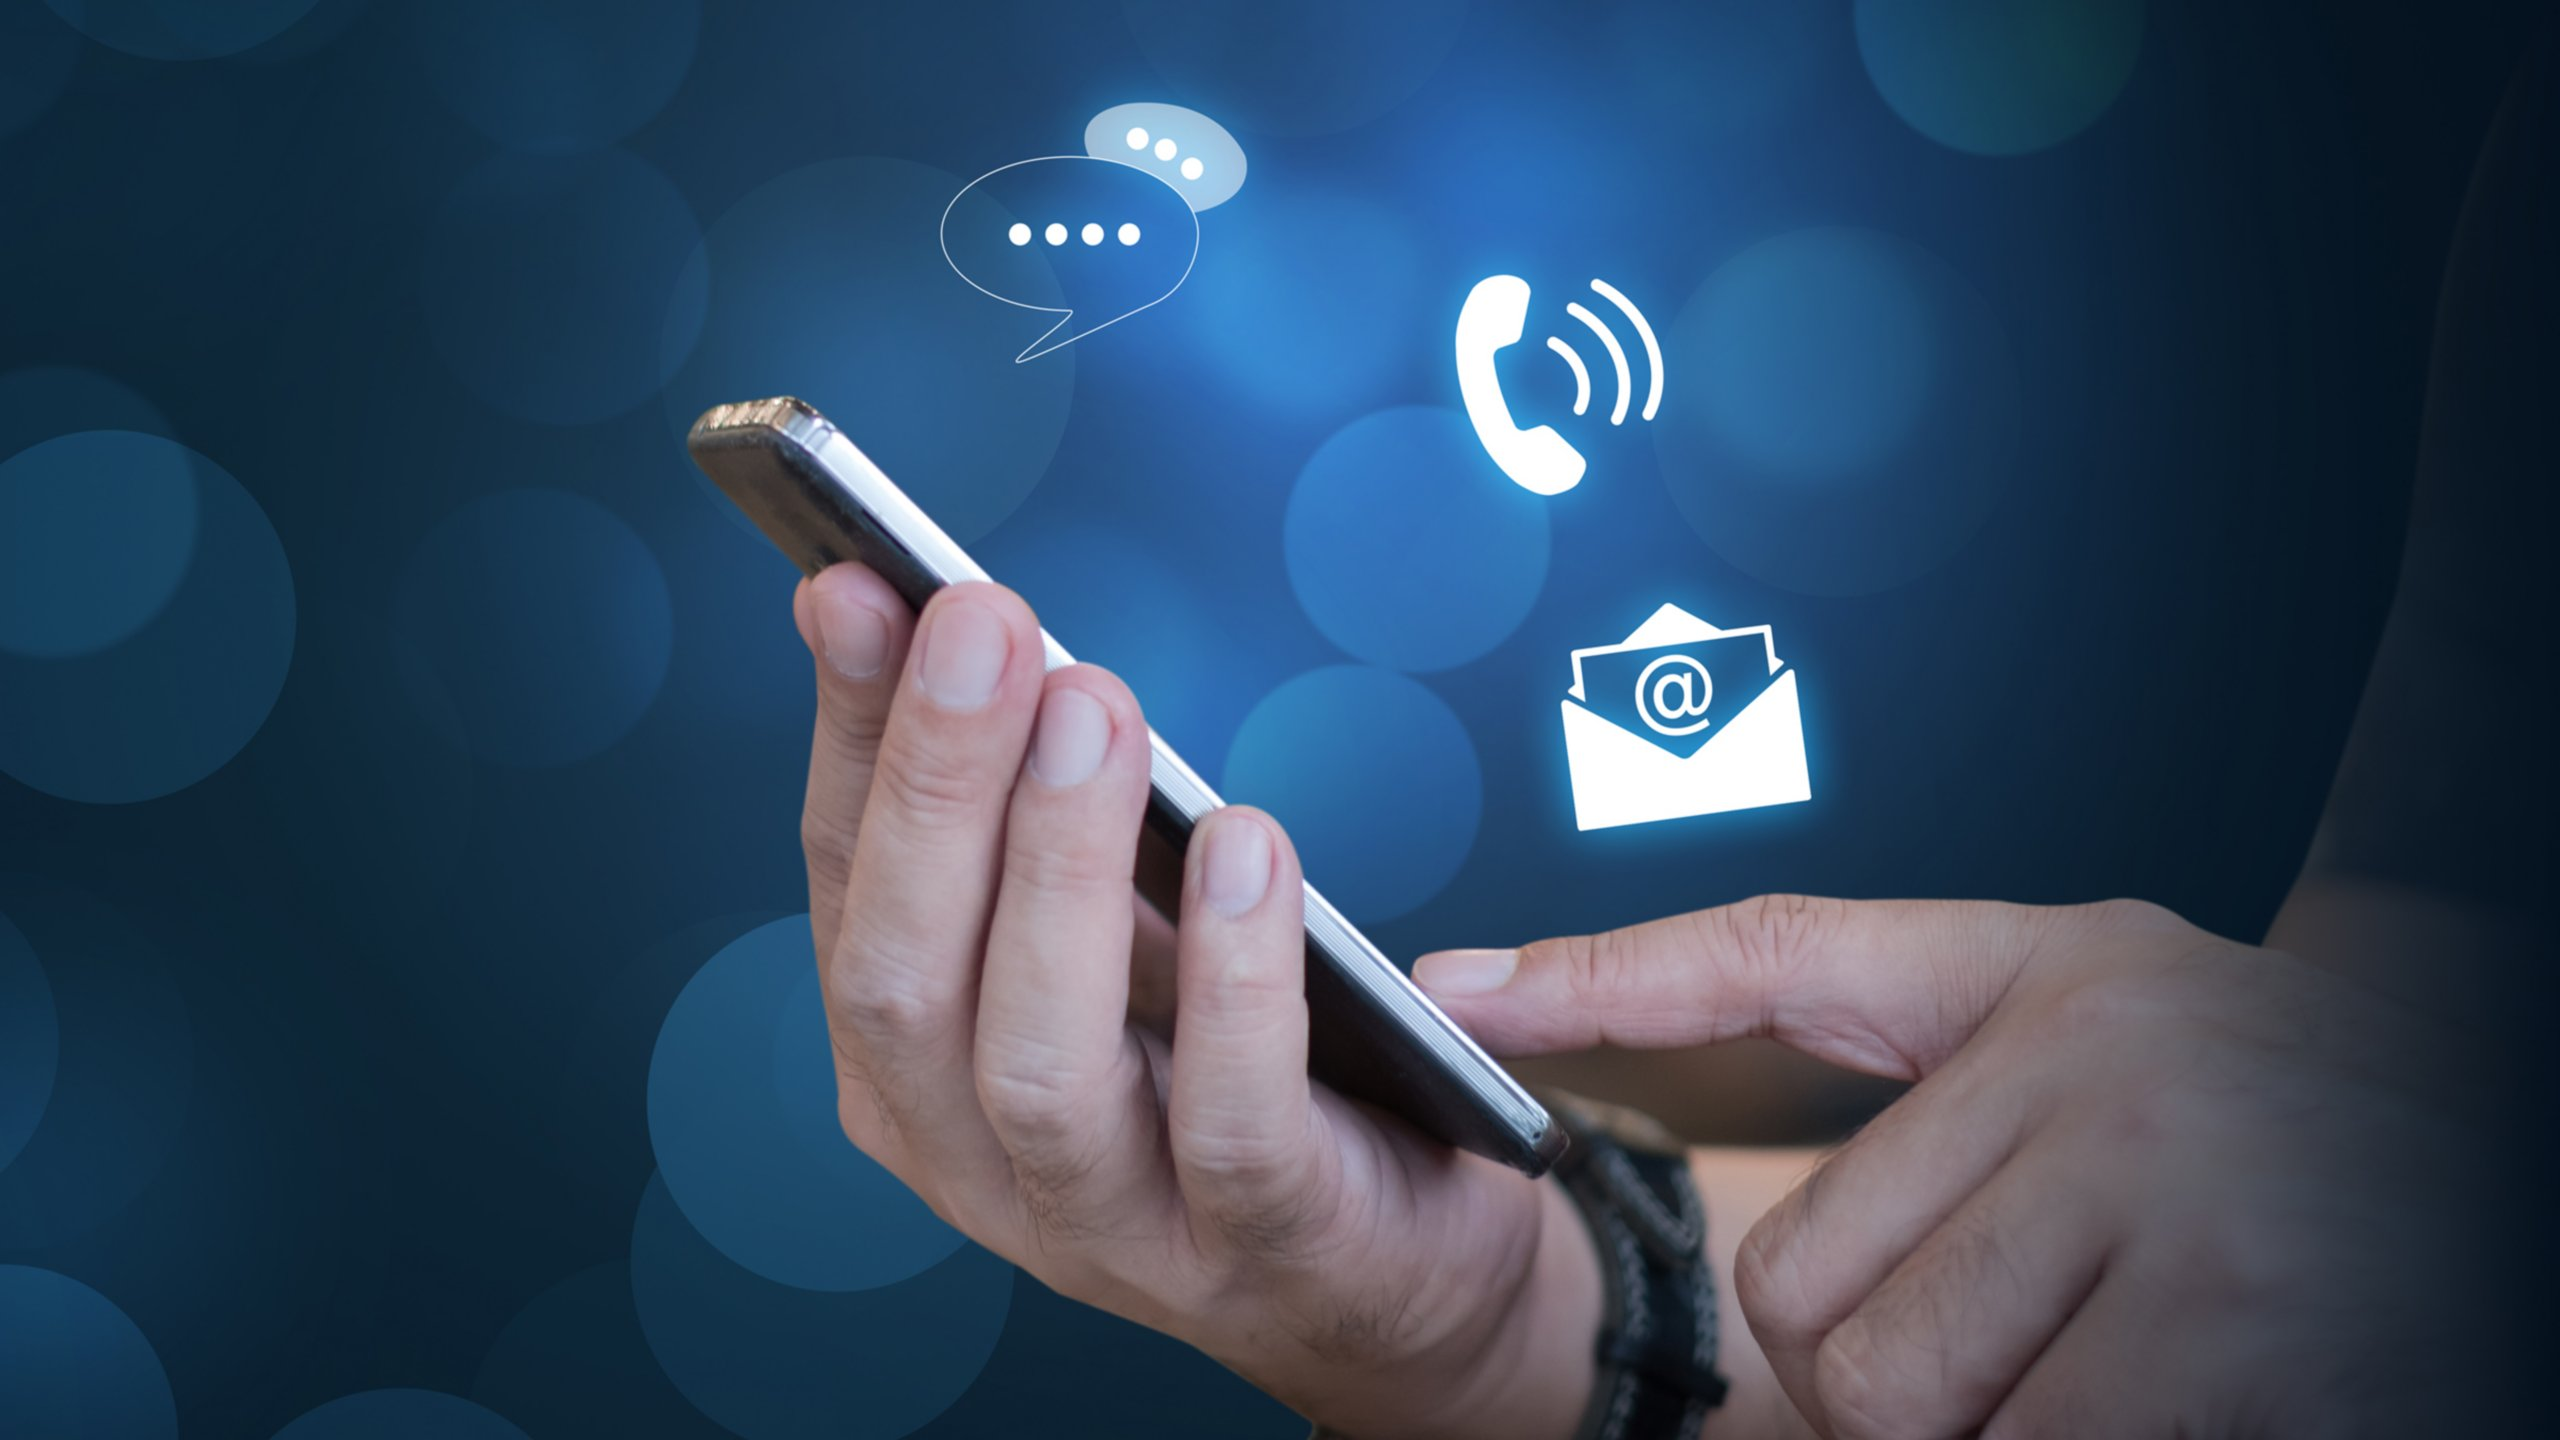 Businessman holding a mobile device with phone and email icons floating above the device to indicate contact options